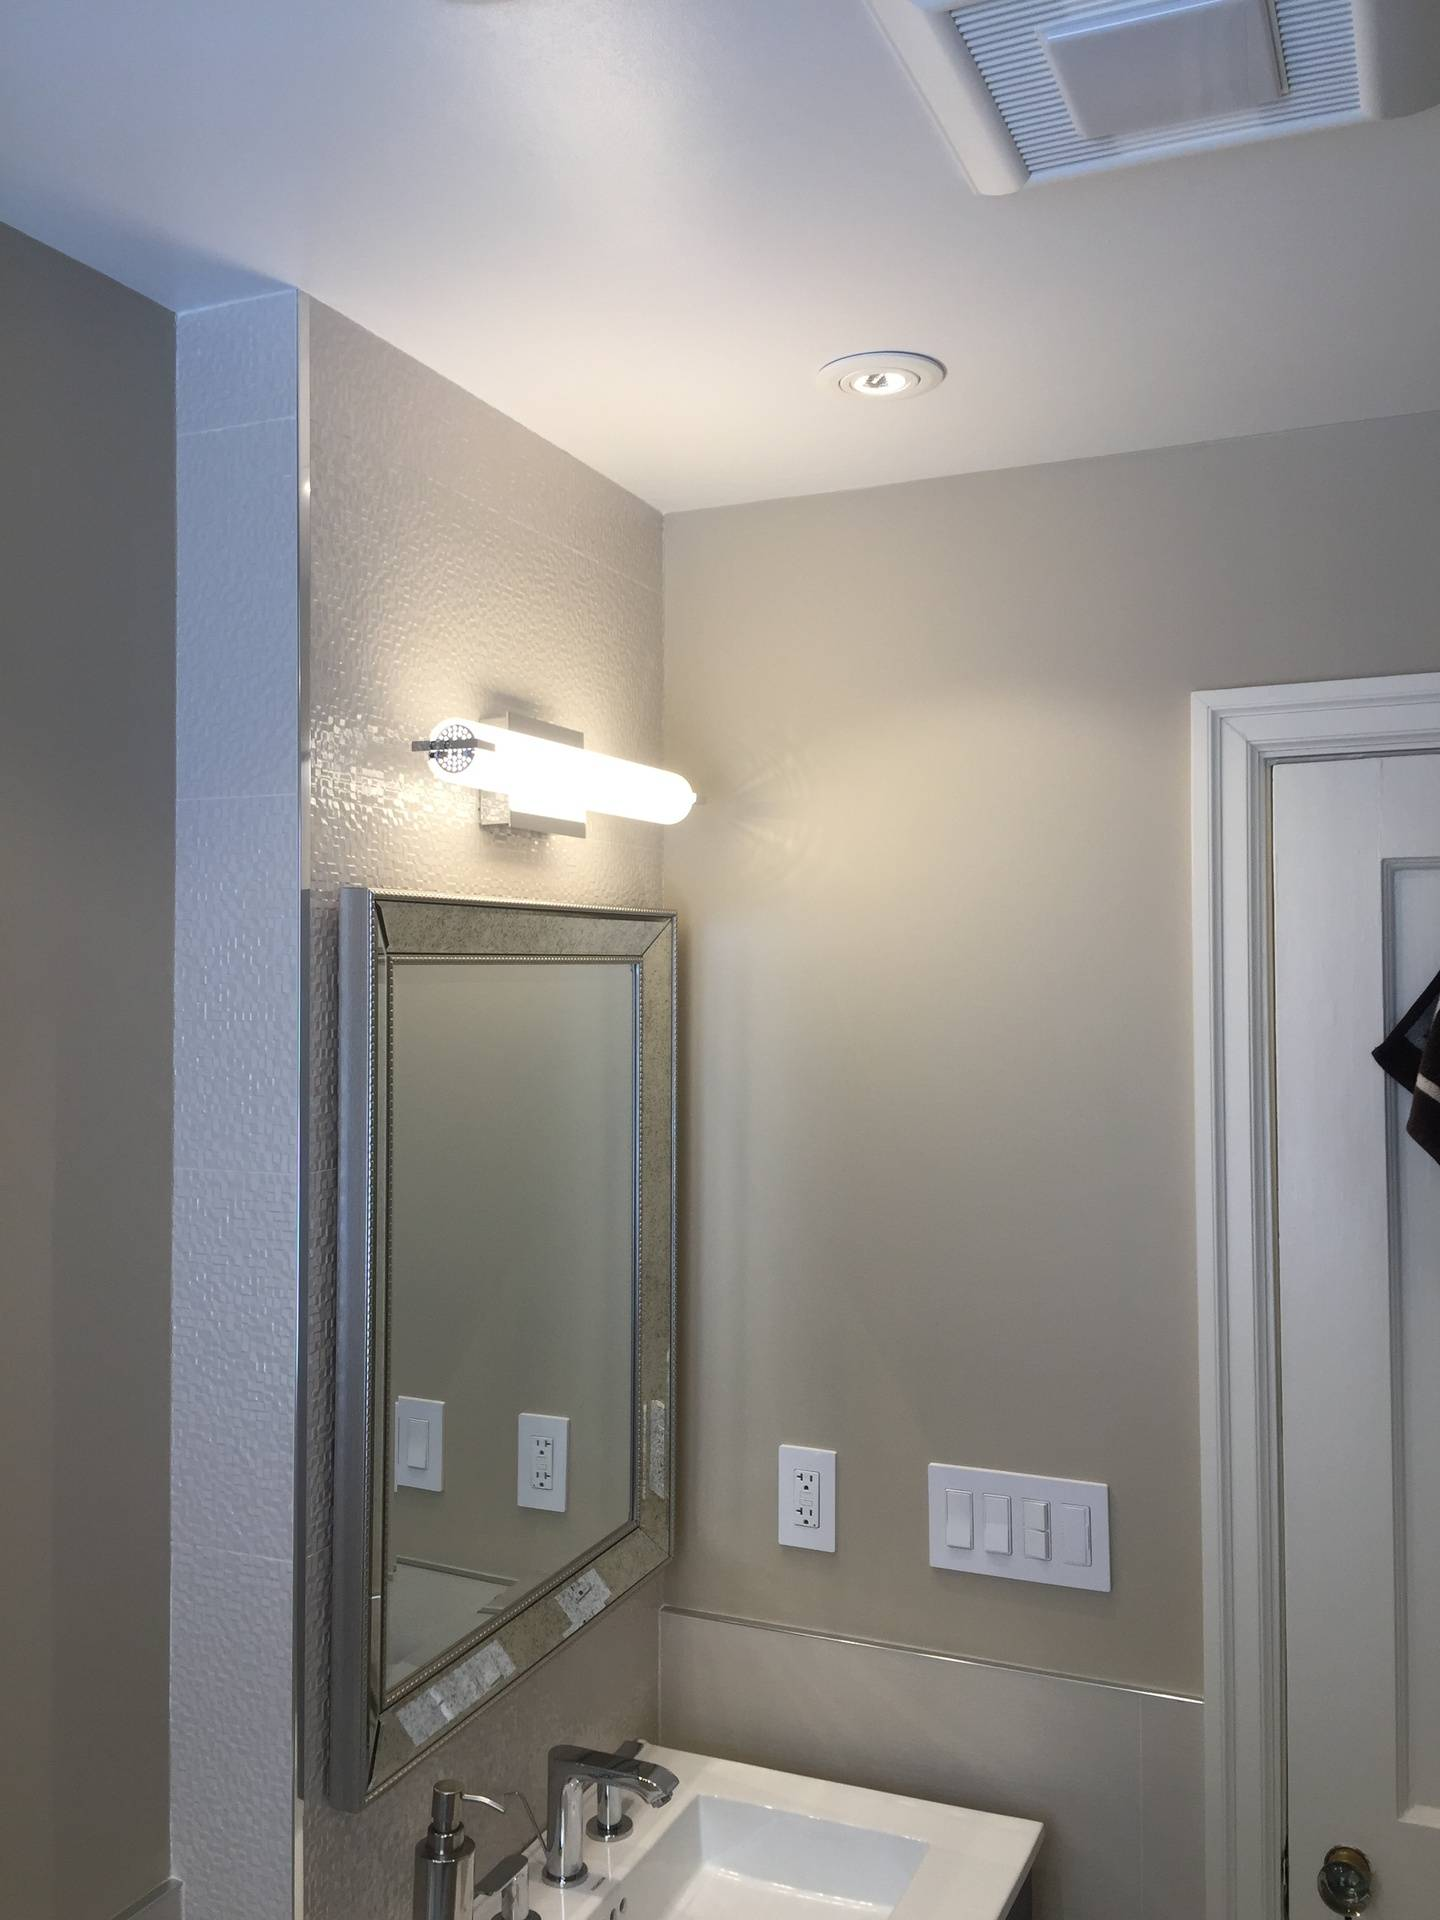 New Vanity and Mirror with Ceiling Fan